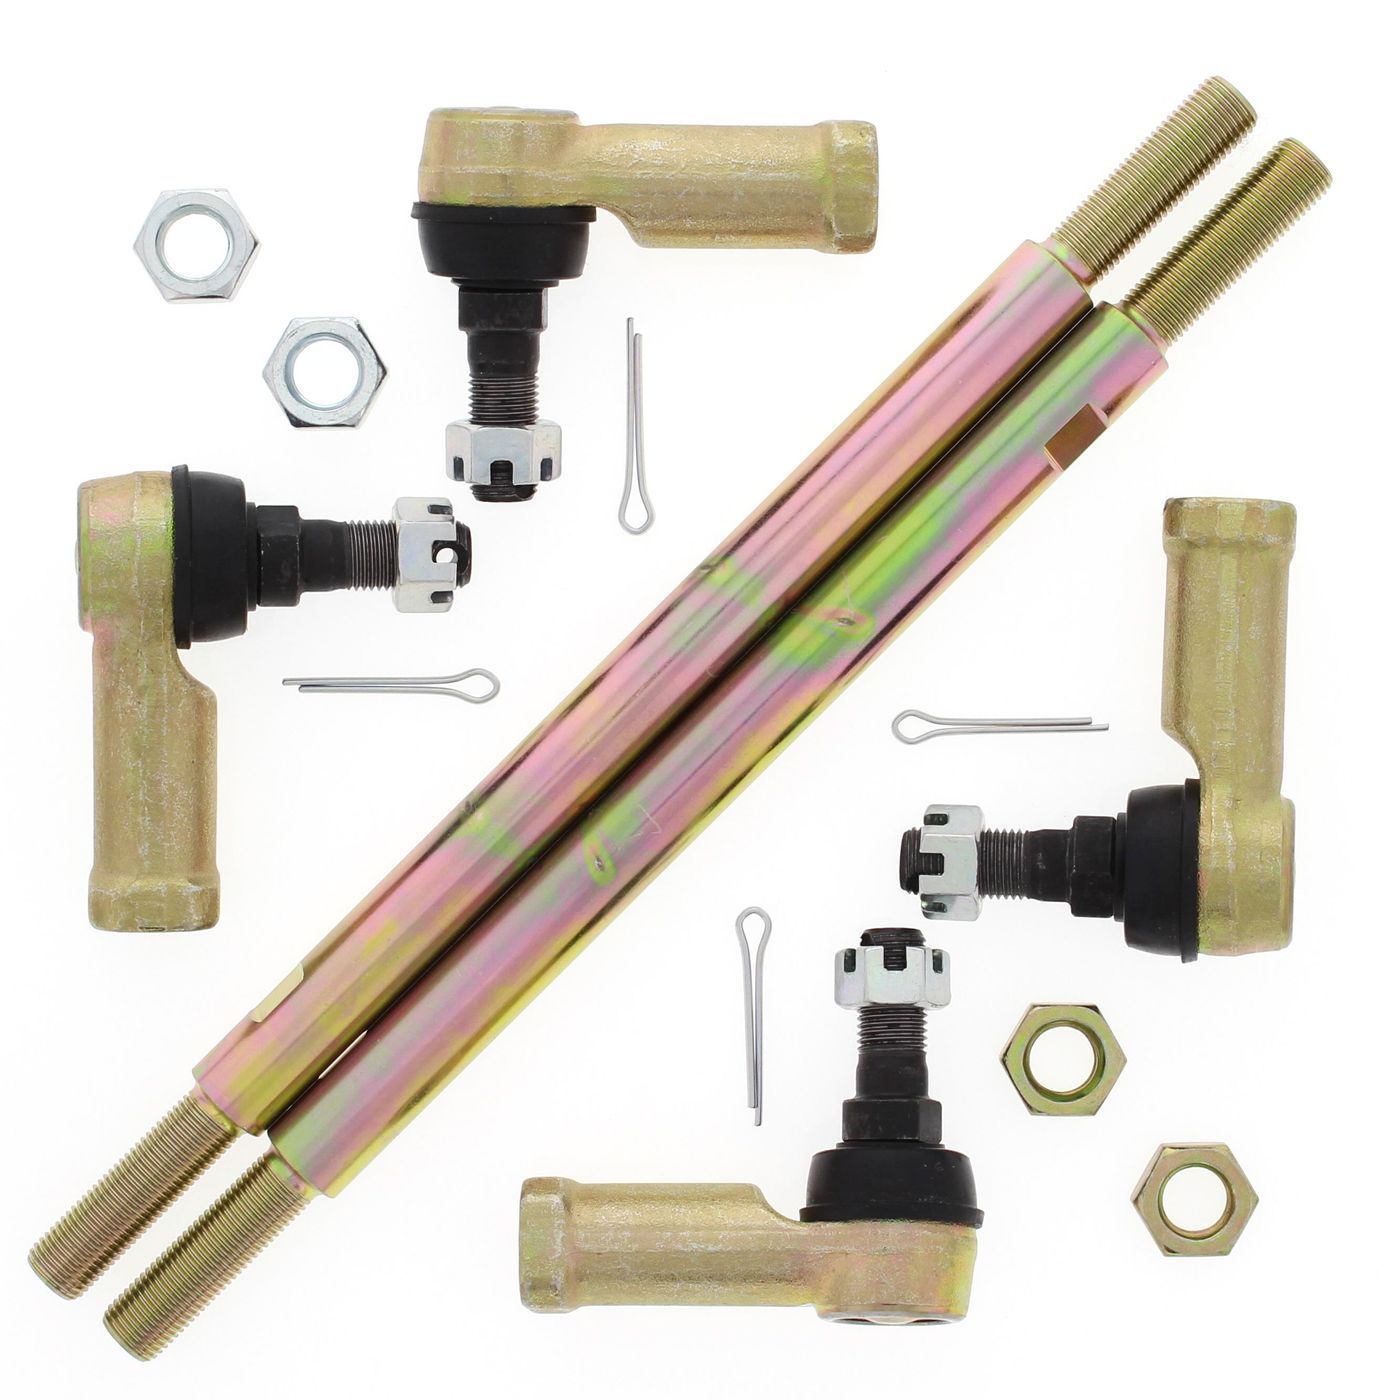 Wrp Tie Rod Kits - WRP521028 image